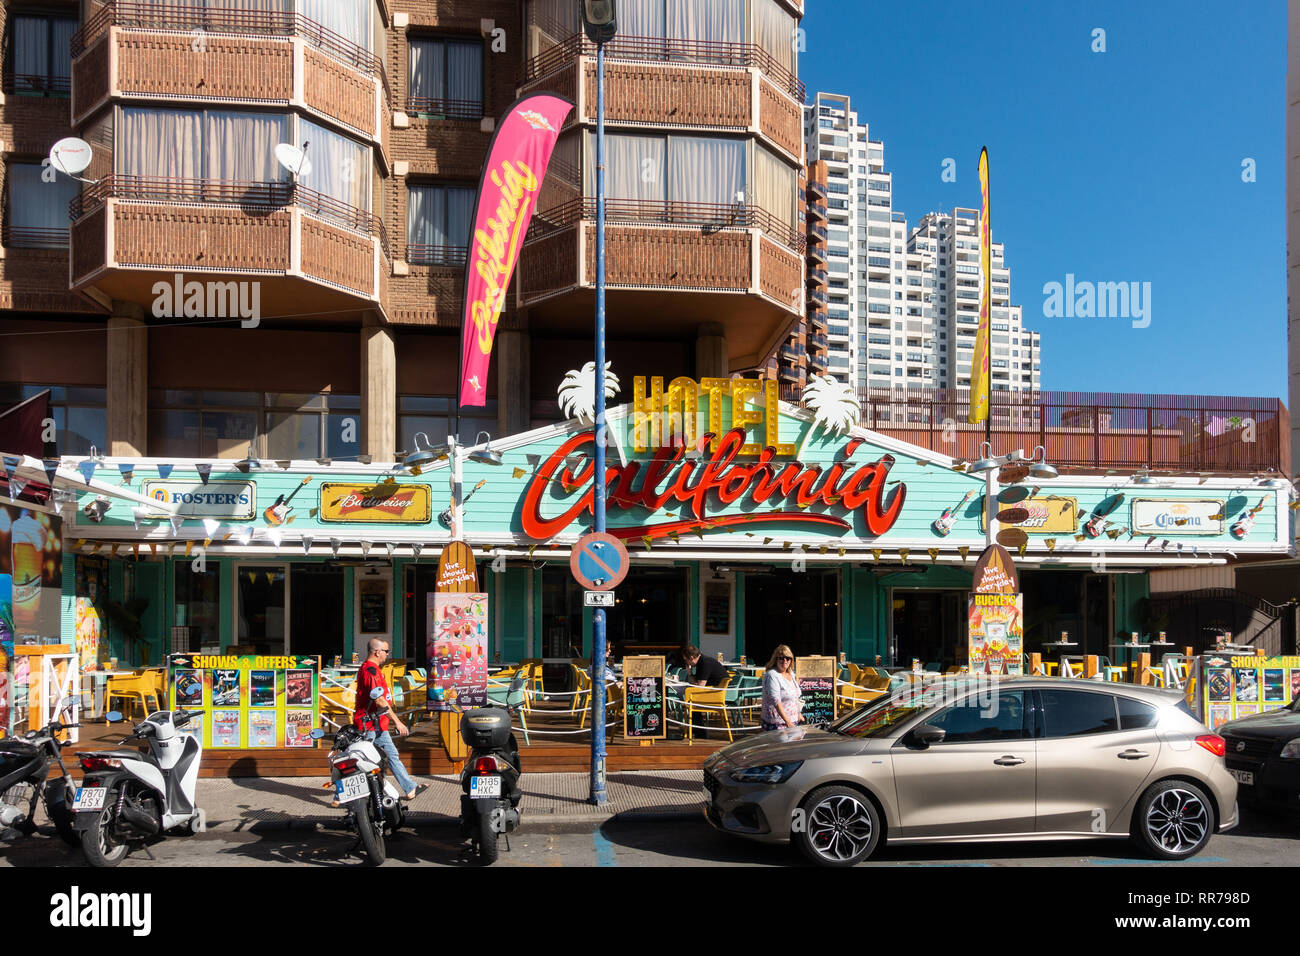 Benidorm, Costa Blanca, Spain, 25th February 2019. Two staff members at the Beachcomber pub in Benidorm New Town on the British square. Two British tourists have been arrested in relation to the alleged attack. Seen here is the Hotel California which is not connected to the reported incident. Credit: Mick Flynn/Alamy Live News Stock Photo